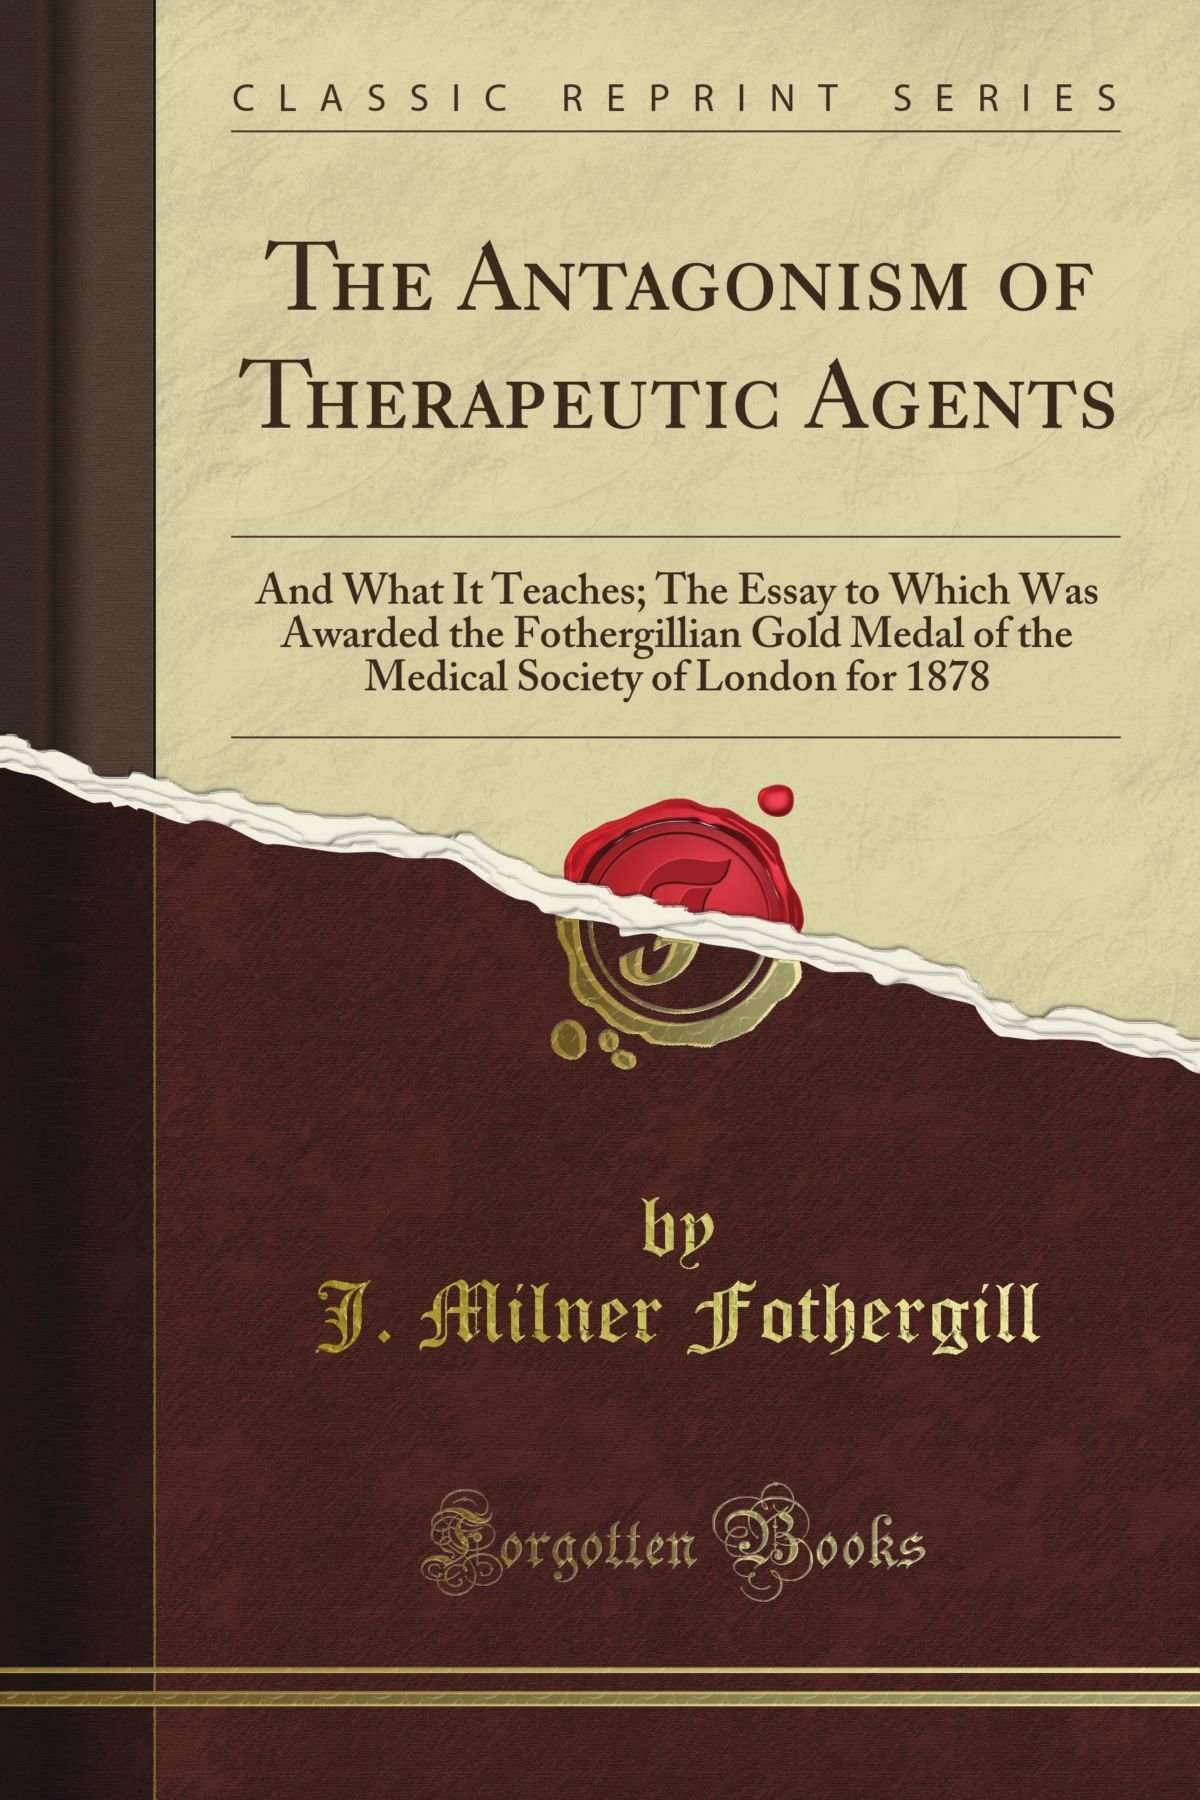 The Antagonism of Therapeutic Agents: And What It Teaches; The Essay to Which Was Awarded the Fothergillian Gold Medal of the Medical Society of London for 1878 (Classic Reprint) pdf